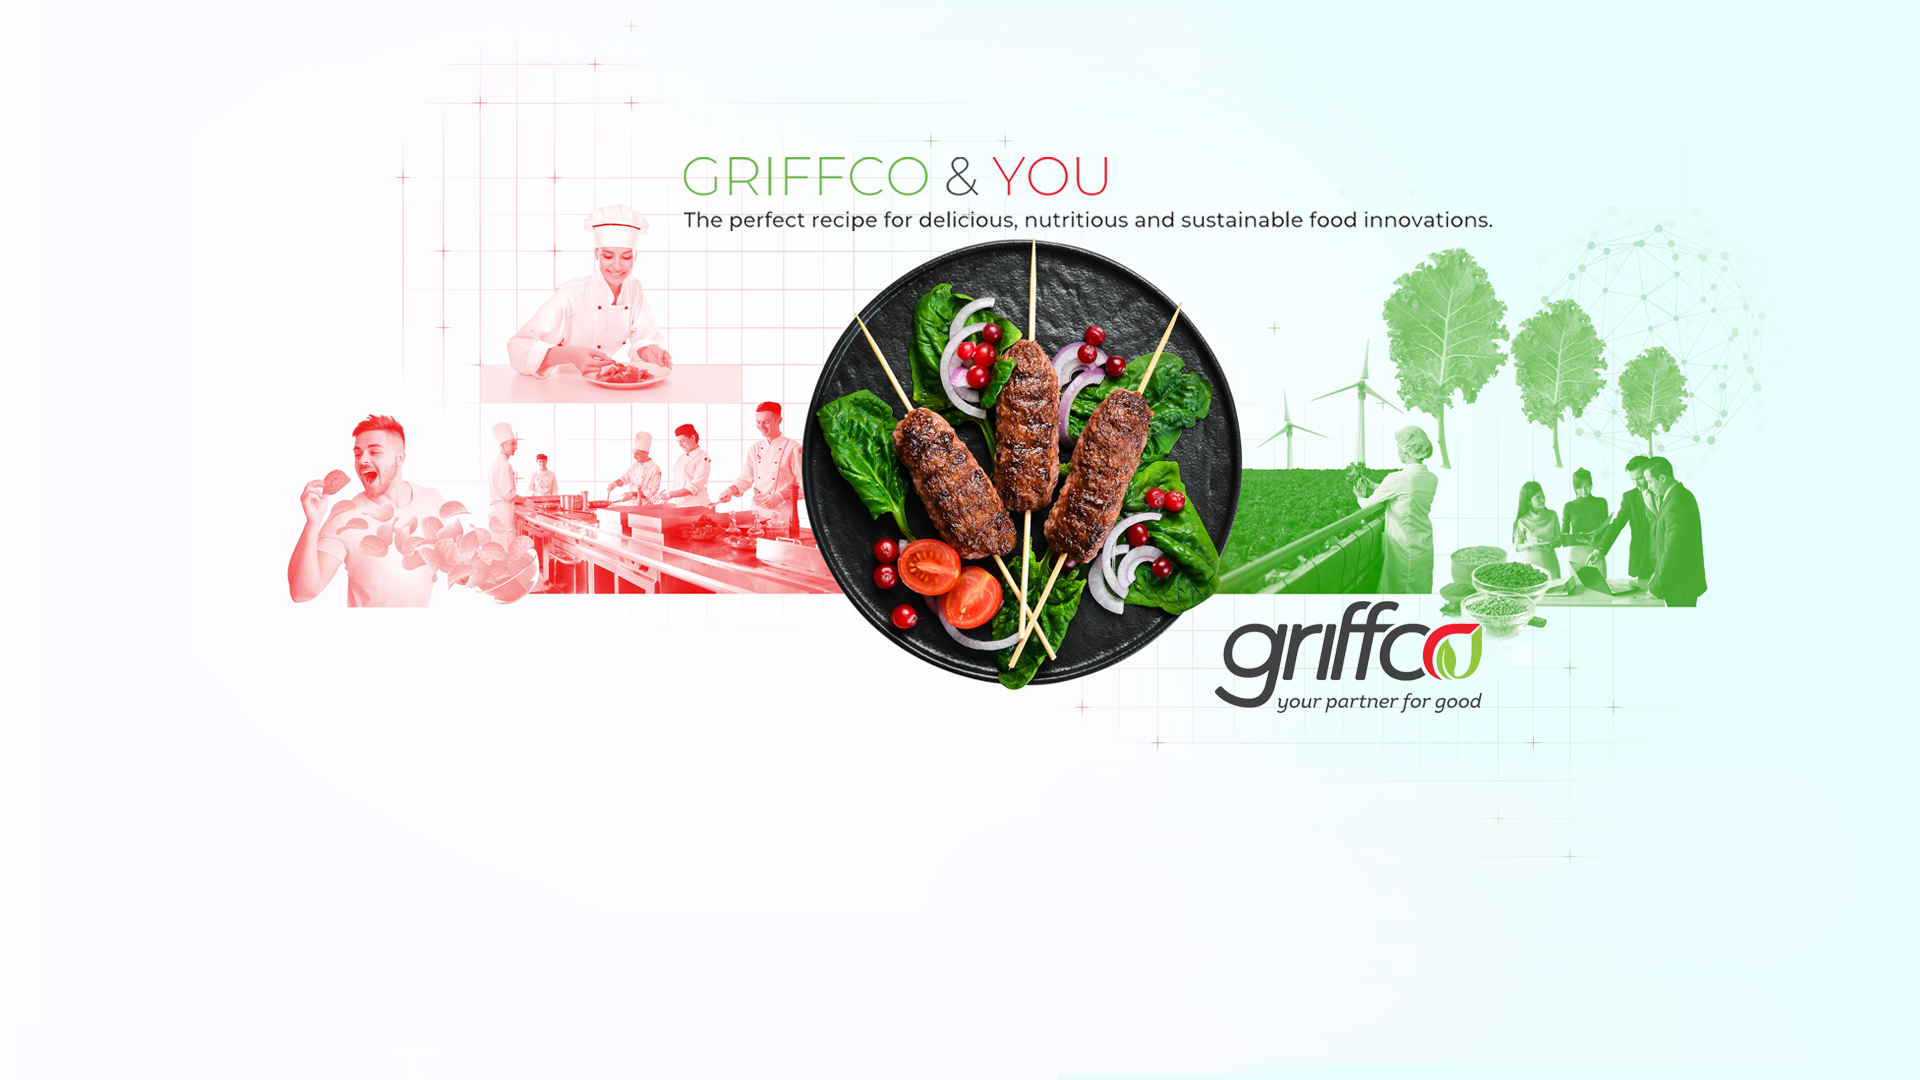 GRIFFCO BRINGS WORLD-CLASS PRODUCTS AND SERVICES TO GCC CUSTOMERS